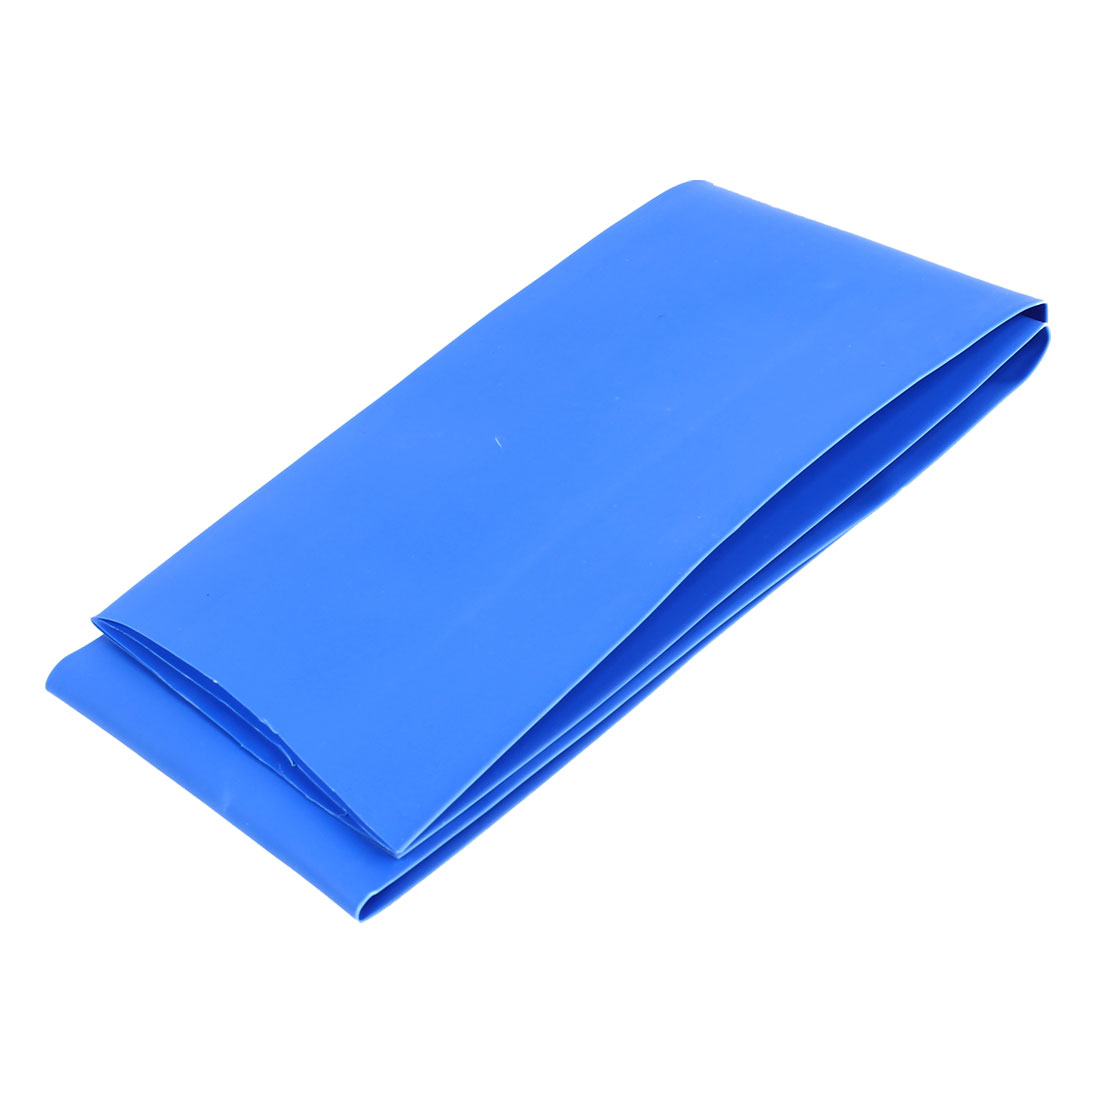 Blue 70mm Diameter 2:1 Polyolefin Tube Sleeving Heat Shrink Tubing 1M 3.3Ft